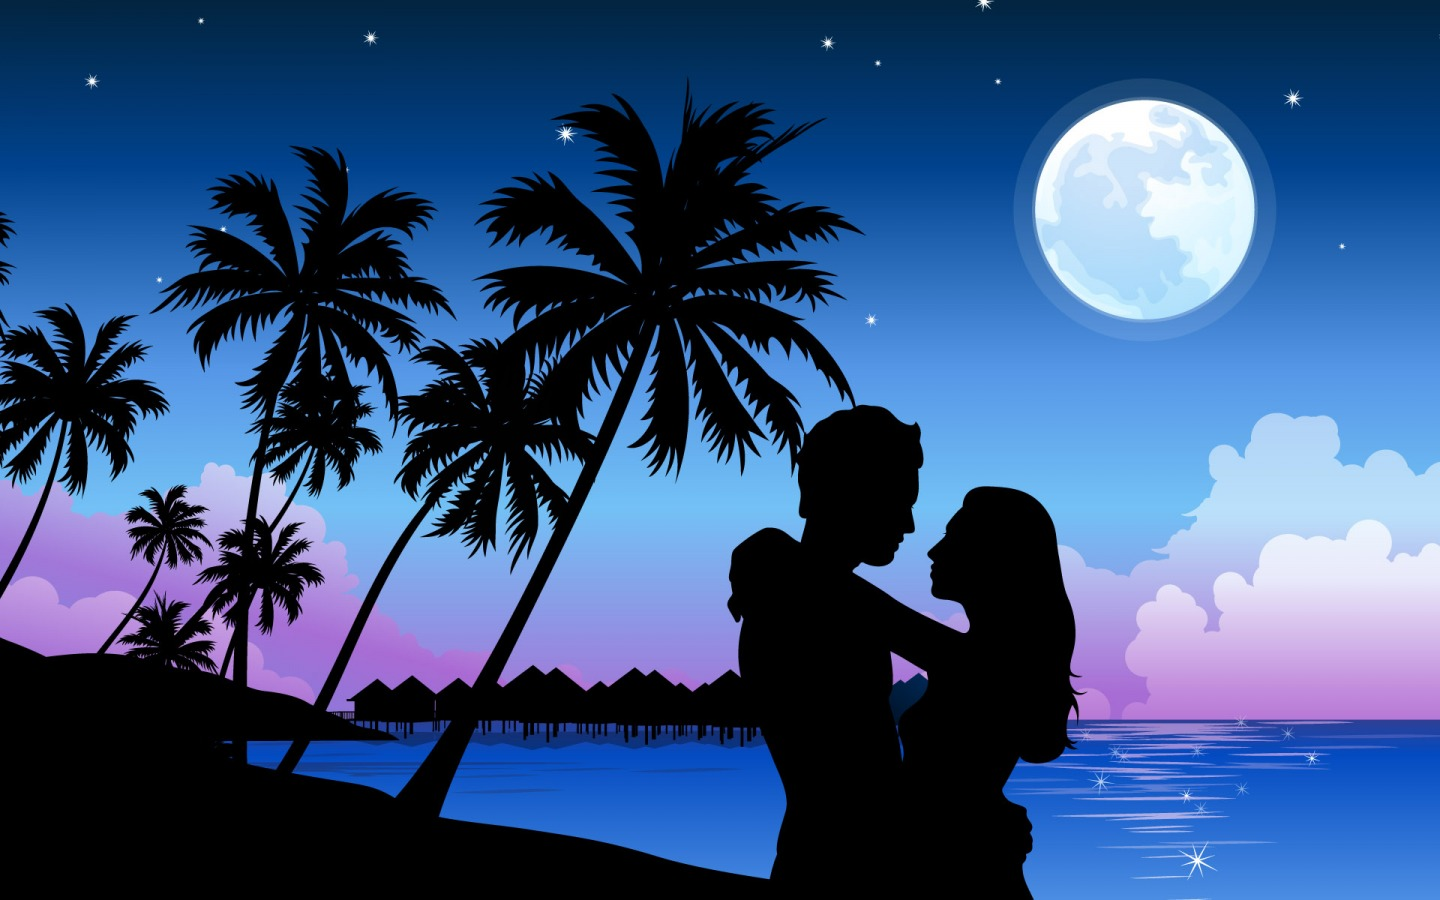 Romantic Paradise Wallpaper Vector D Wallpapers in jpg format for